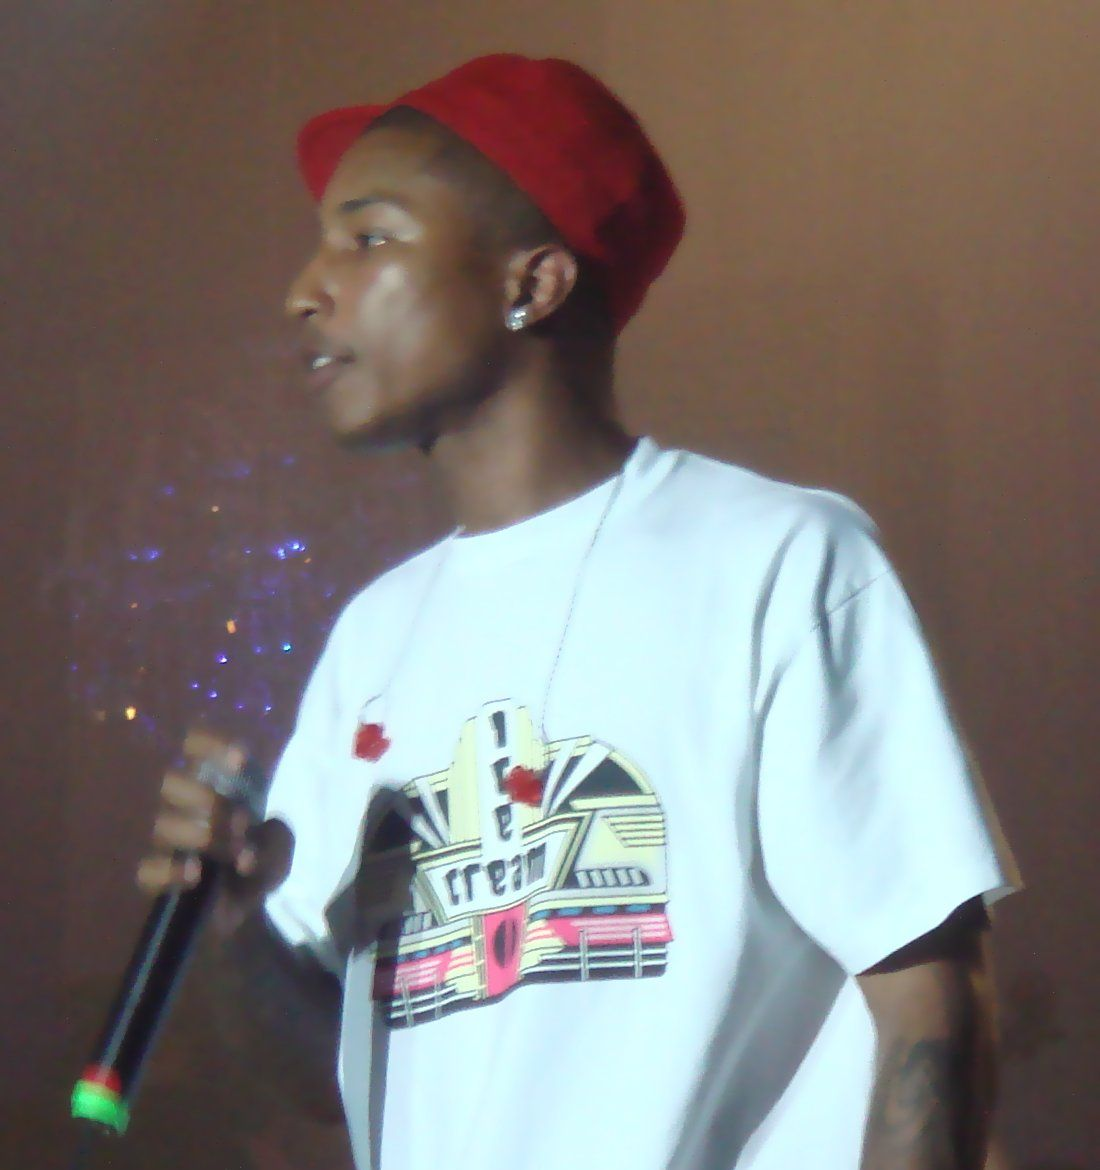 BBC - Albums produced by Pharrell Williams